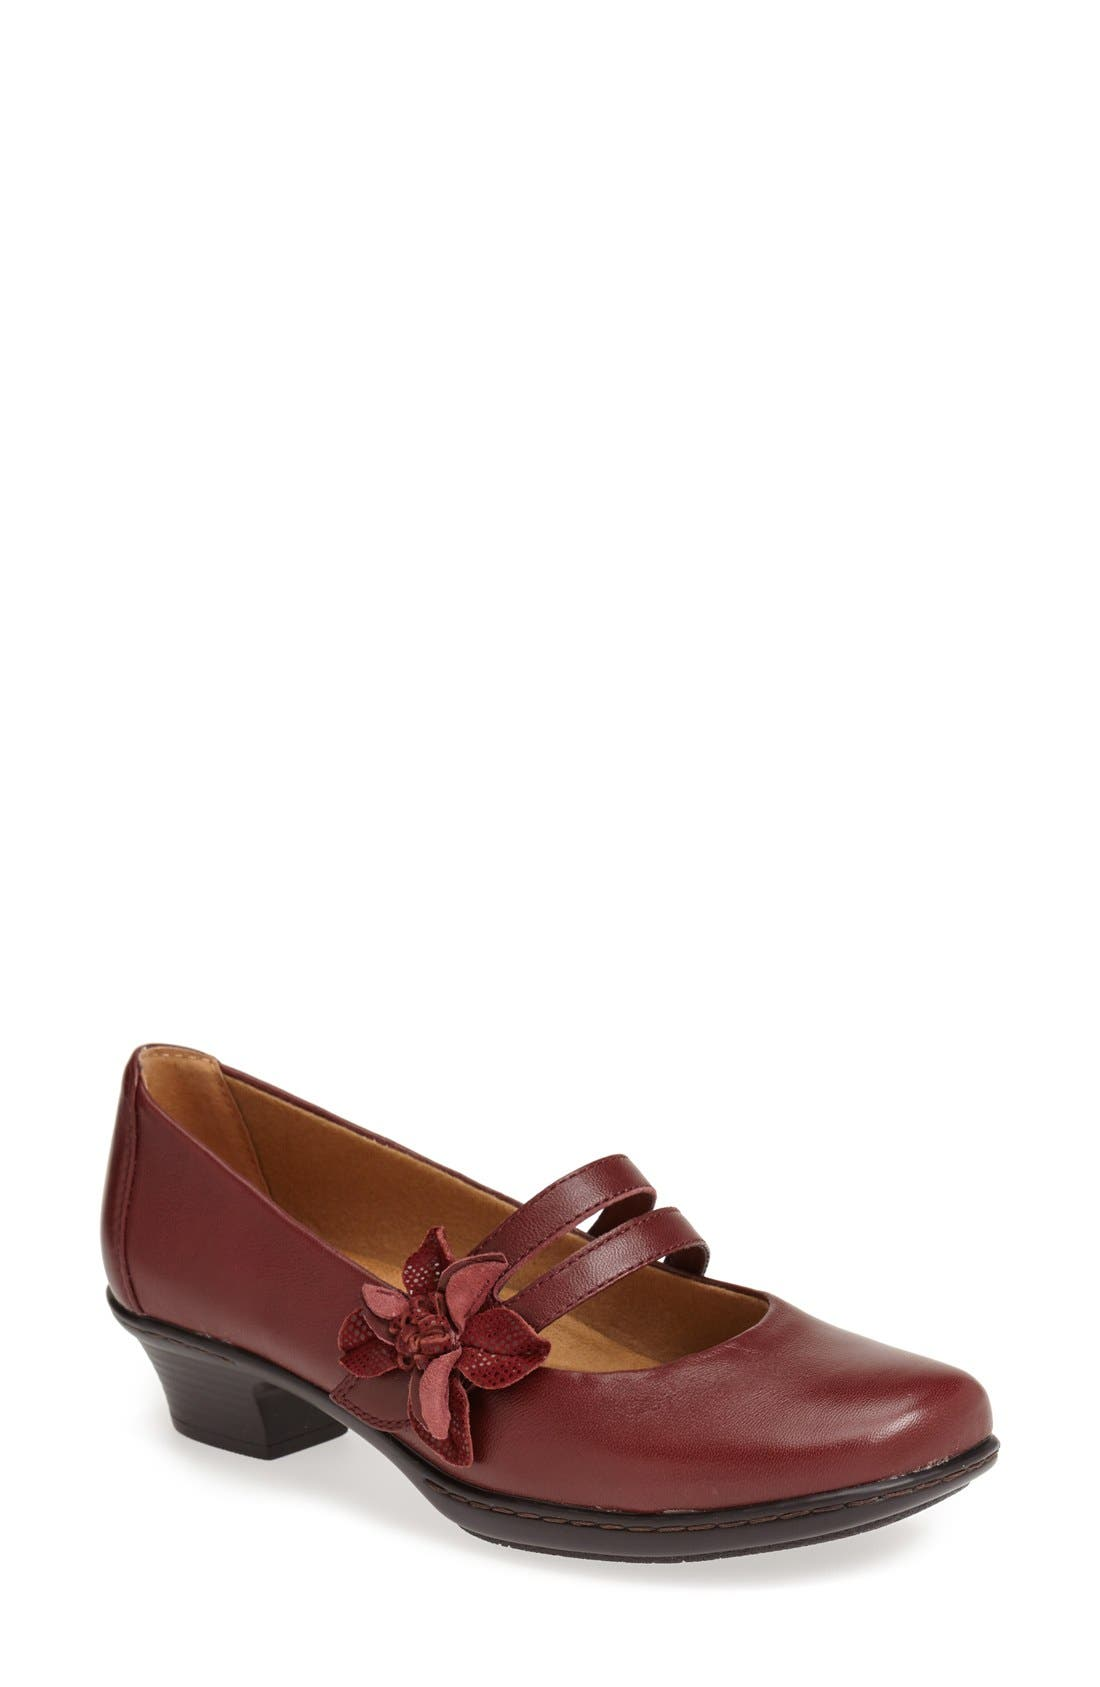 Alternate Image 1 Selected - Softspots 'Sable' Mary Jane Pump (Women)